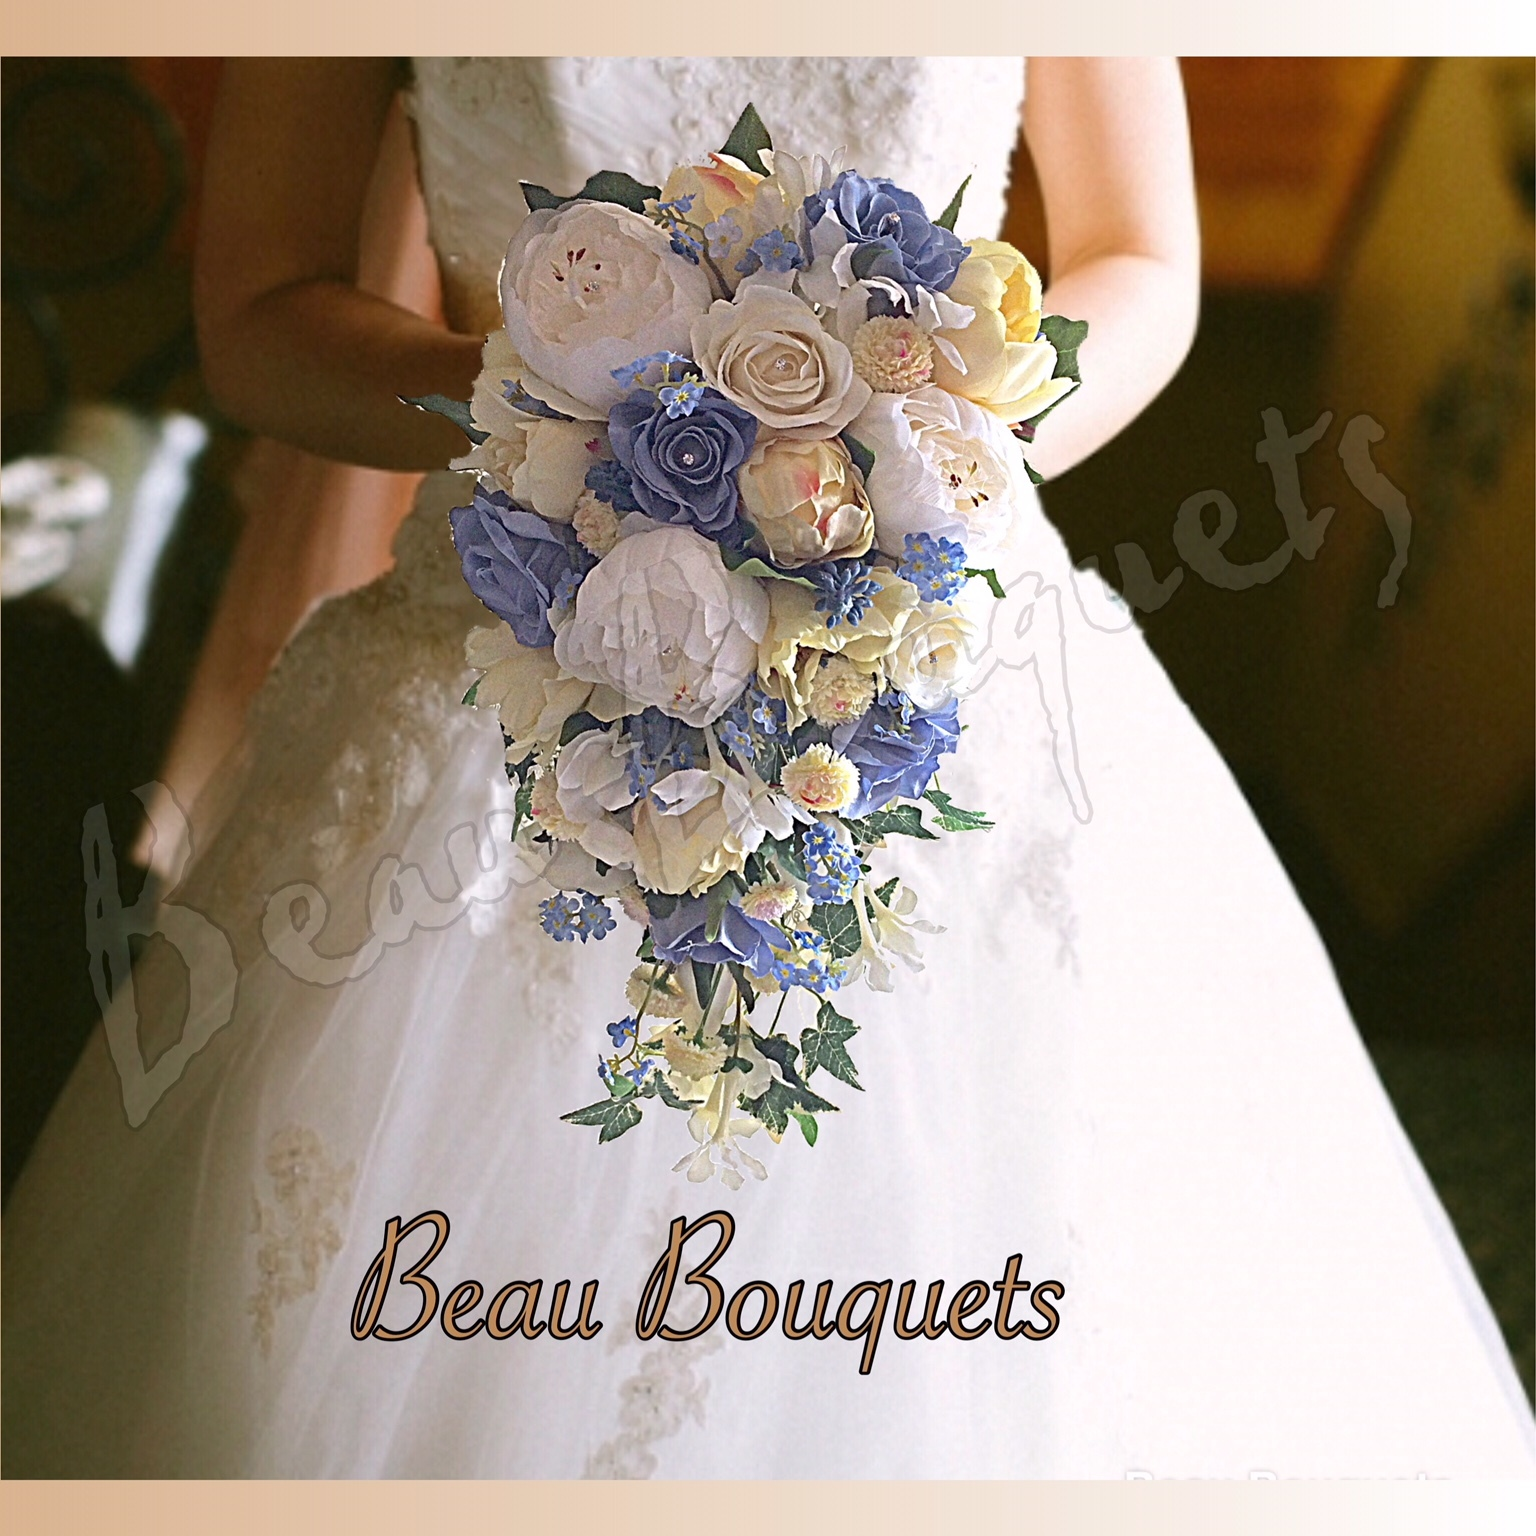 HONOUR - CASCADE BRIDE BOUQUET Cascade Rose, peony, forget me not, bluebell, stephanotis, sweetpea, freesia in Soft yellows Ivory and pastel blues